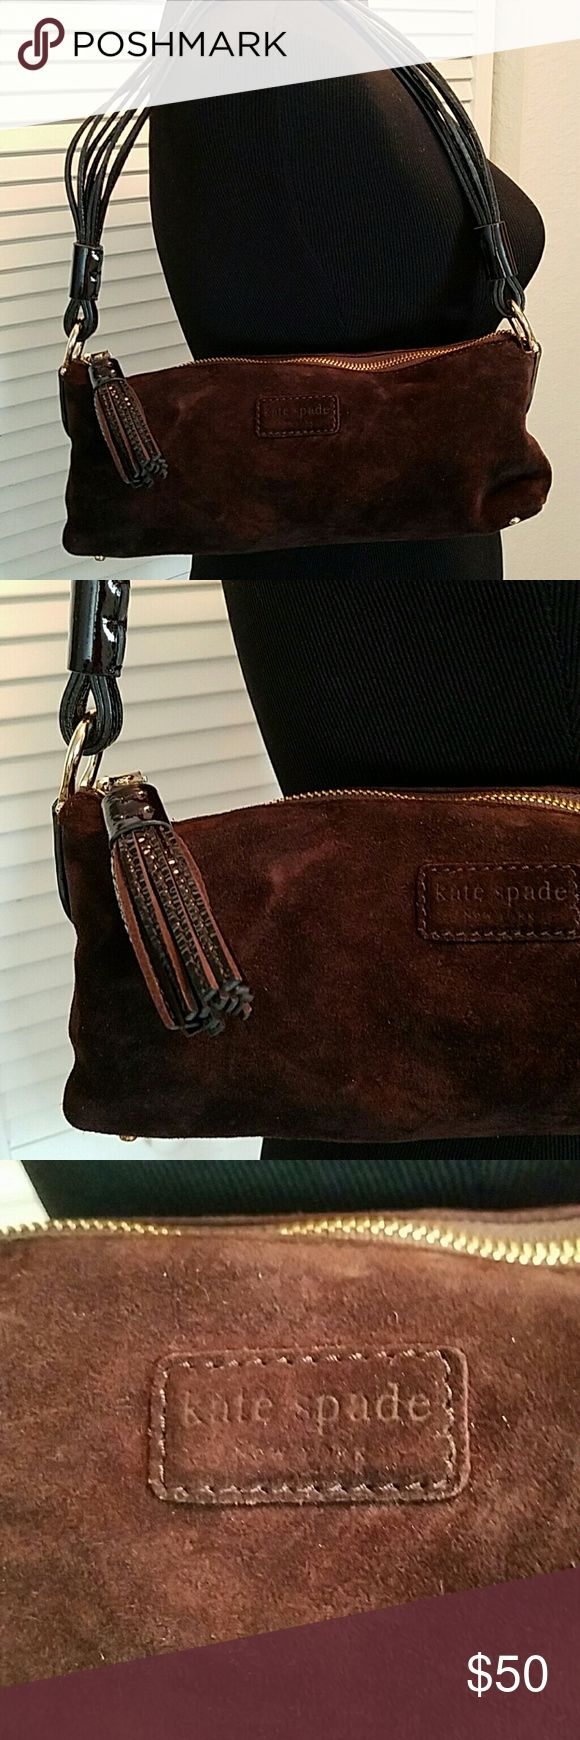 Rare KATE SPATE Suede Mini Satchel Handbag Pre owned but in great condition.  Barely used. Clean, cute and gorgeous bag. kate spade Bags Mini Bags